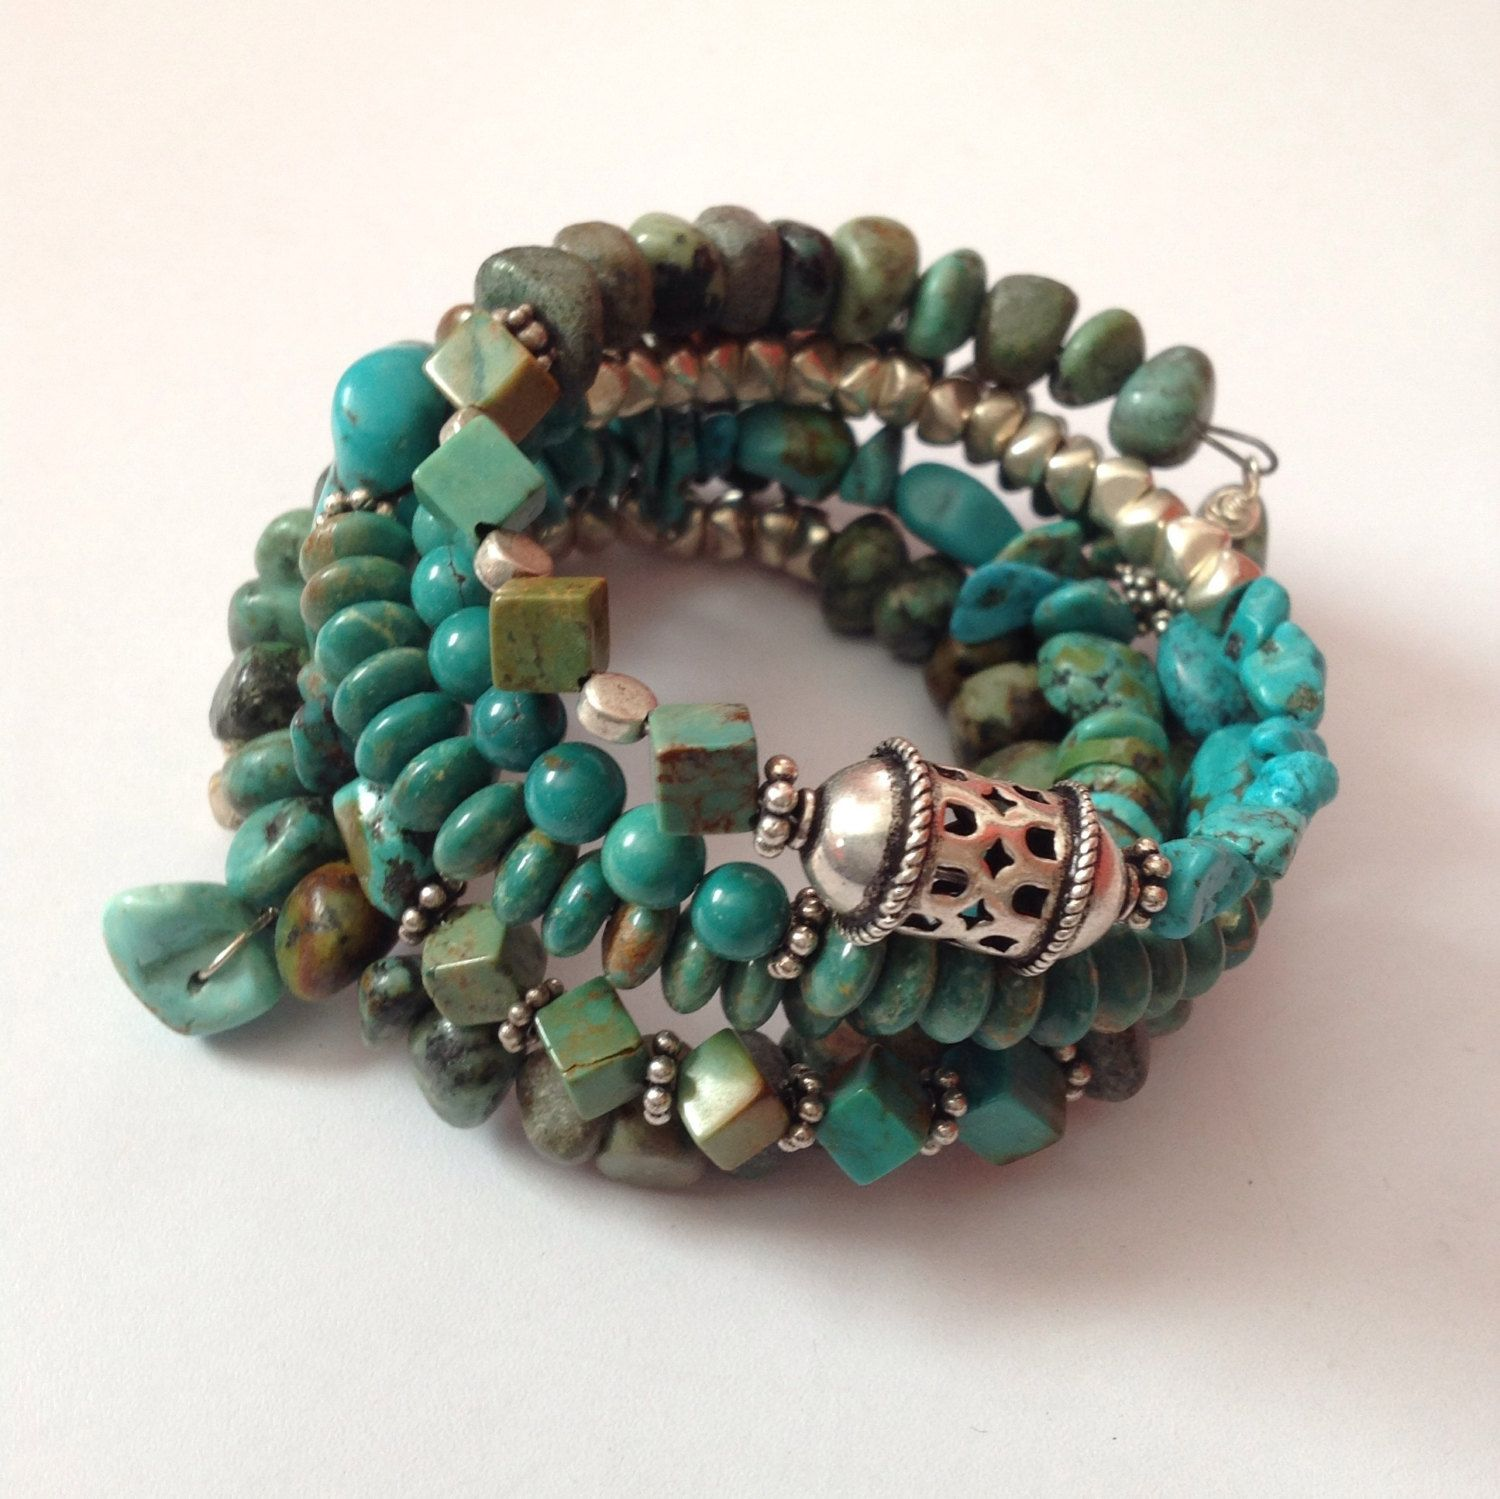 Turquoise Cuff With Sterling And White Brass Share